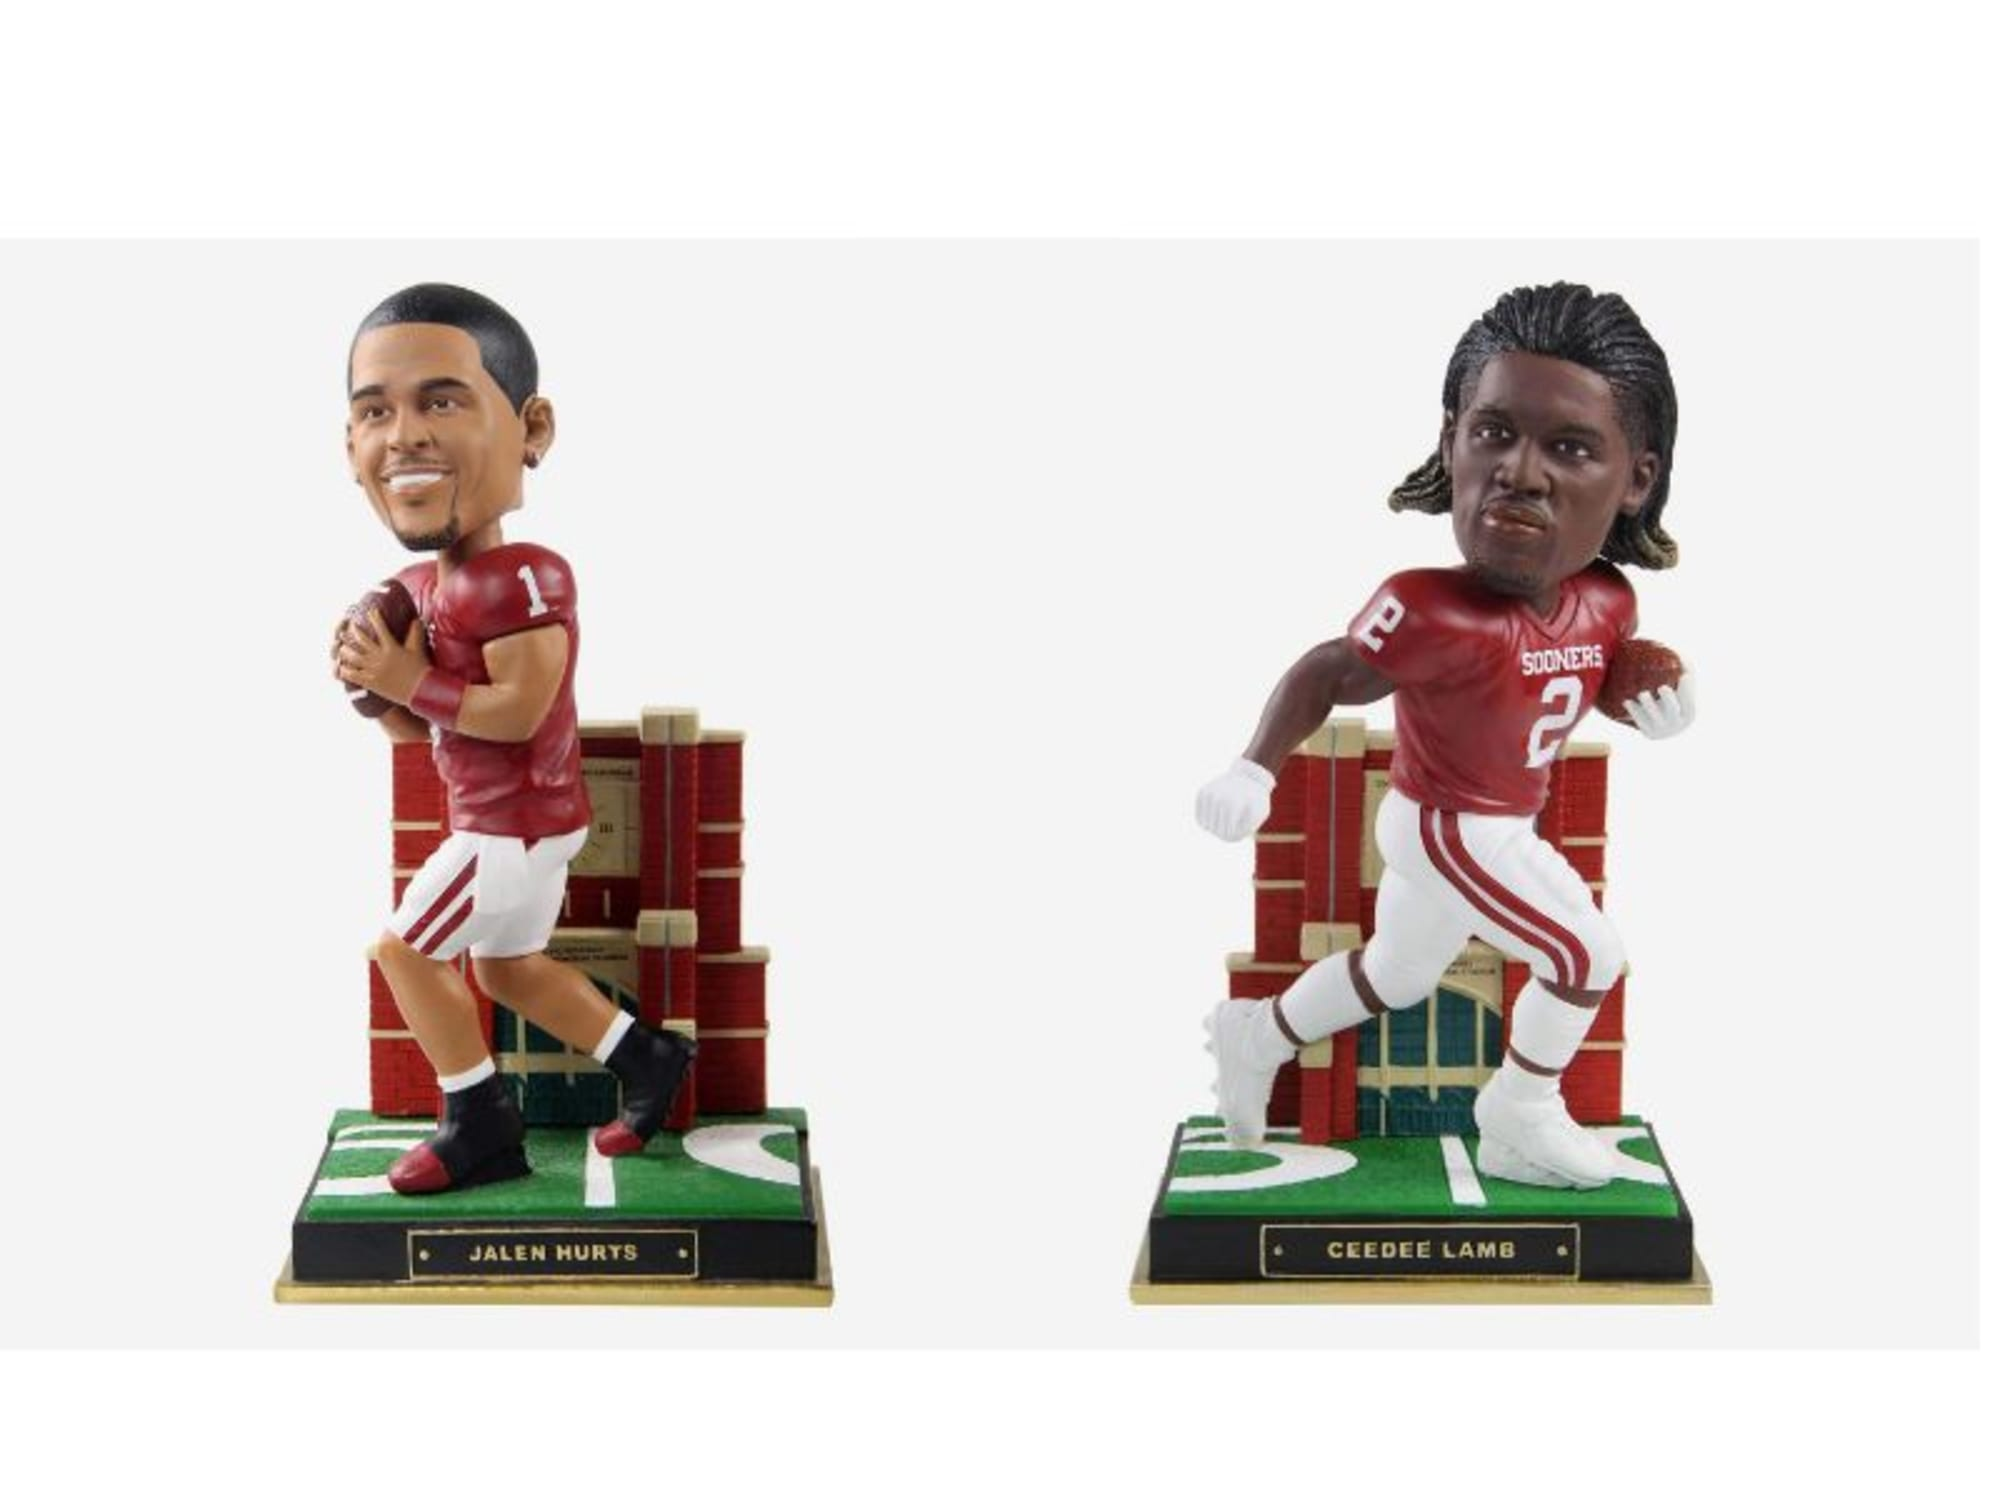 Oklahoma Sooners fans will love these Gate Series bobbleheads